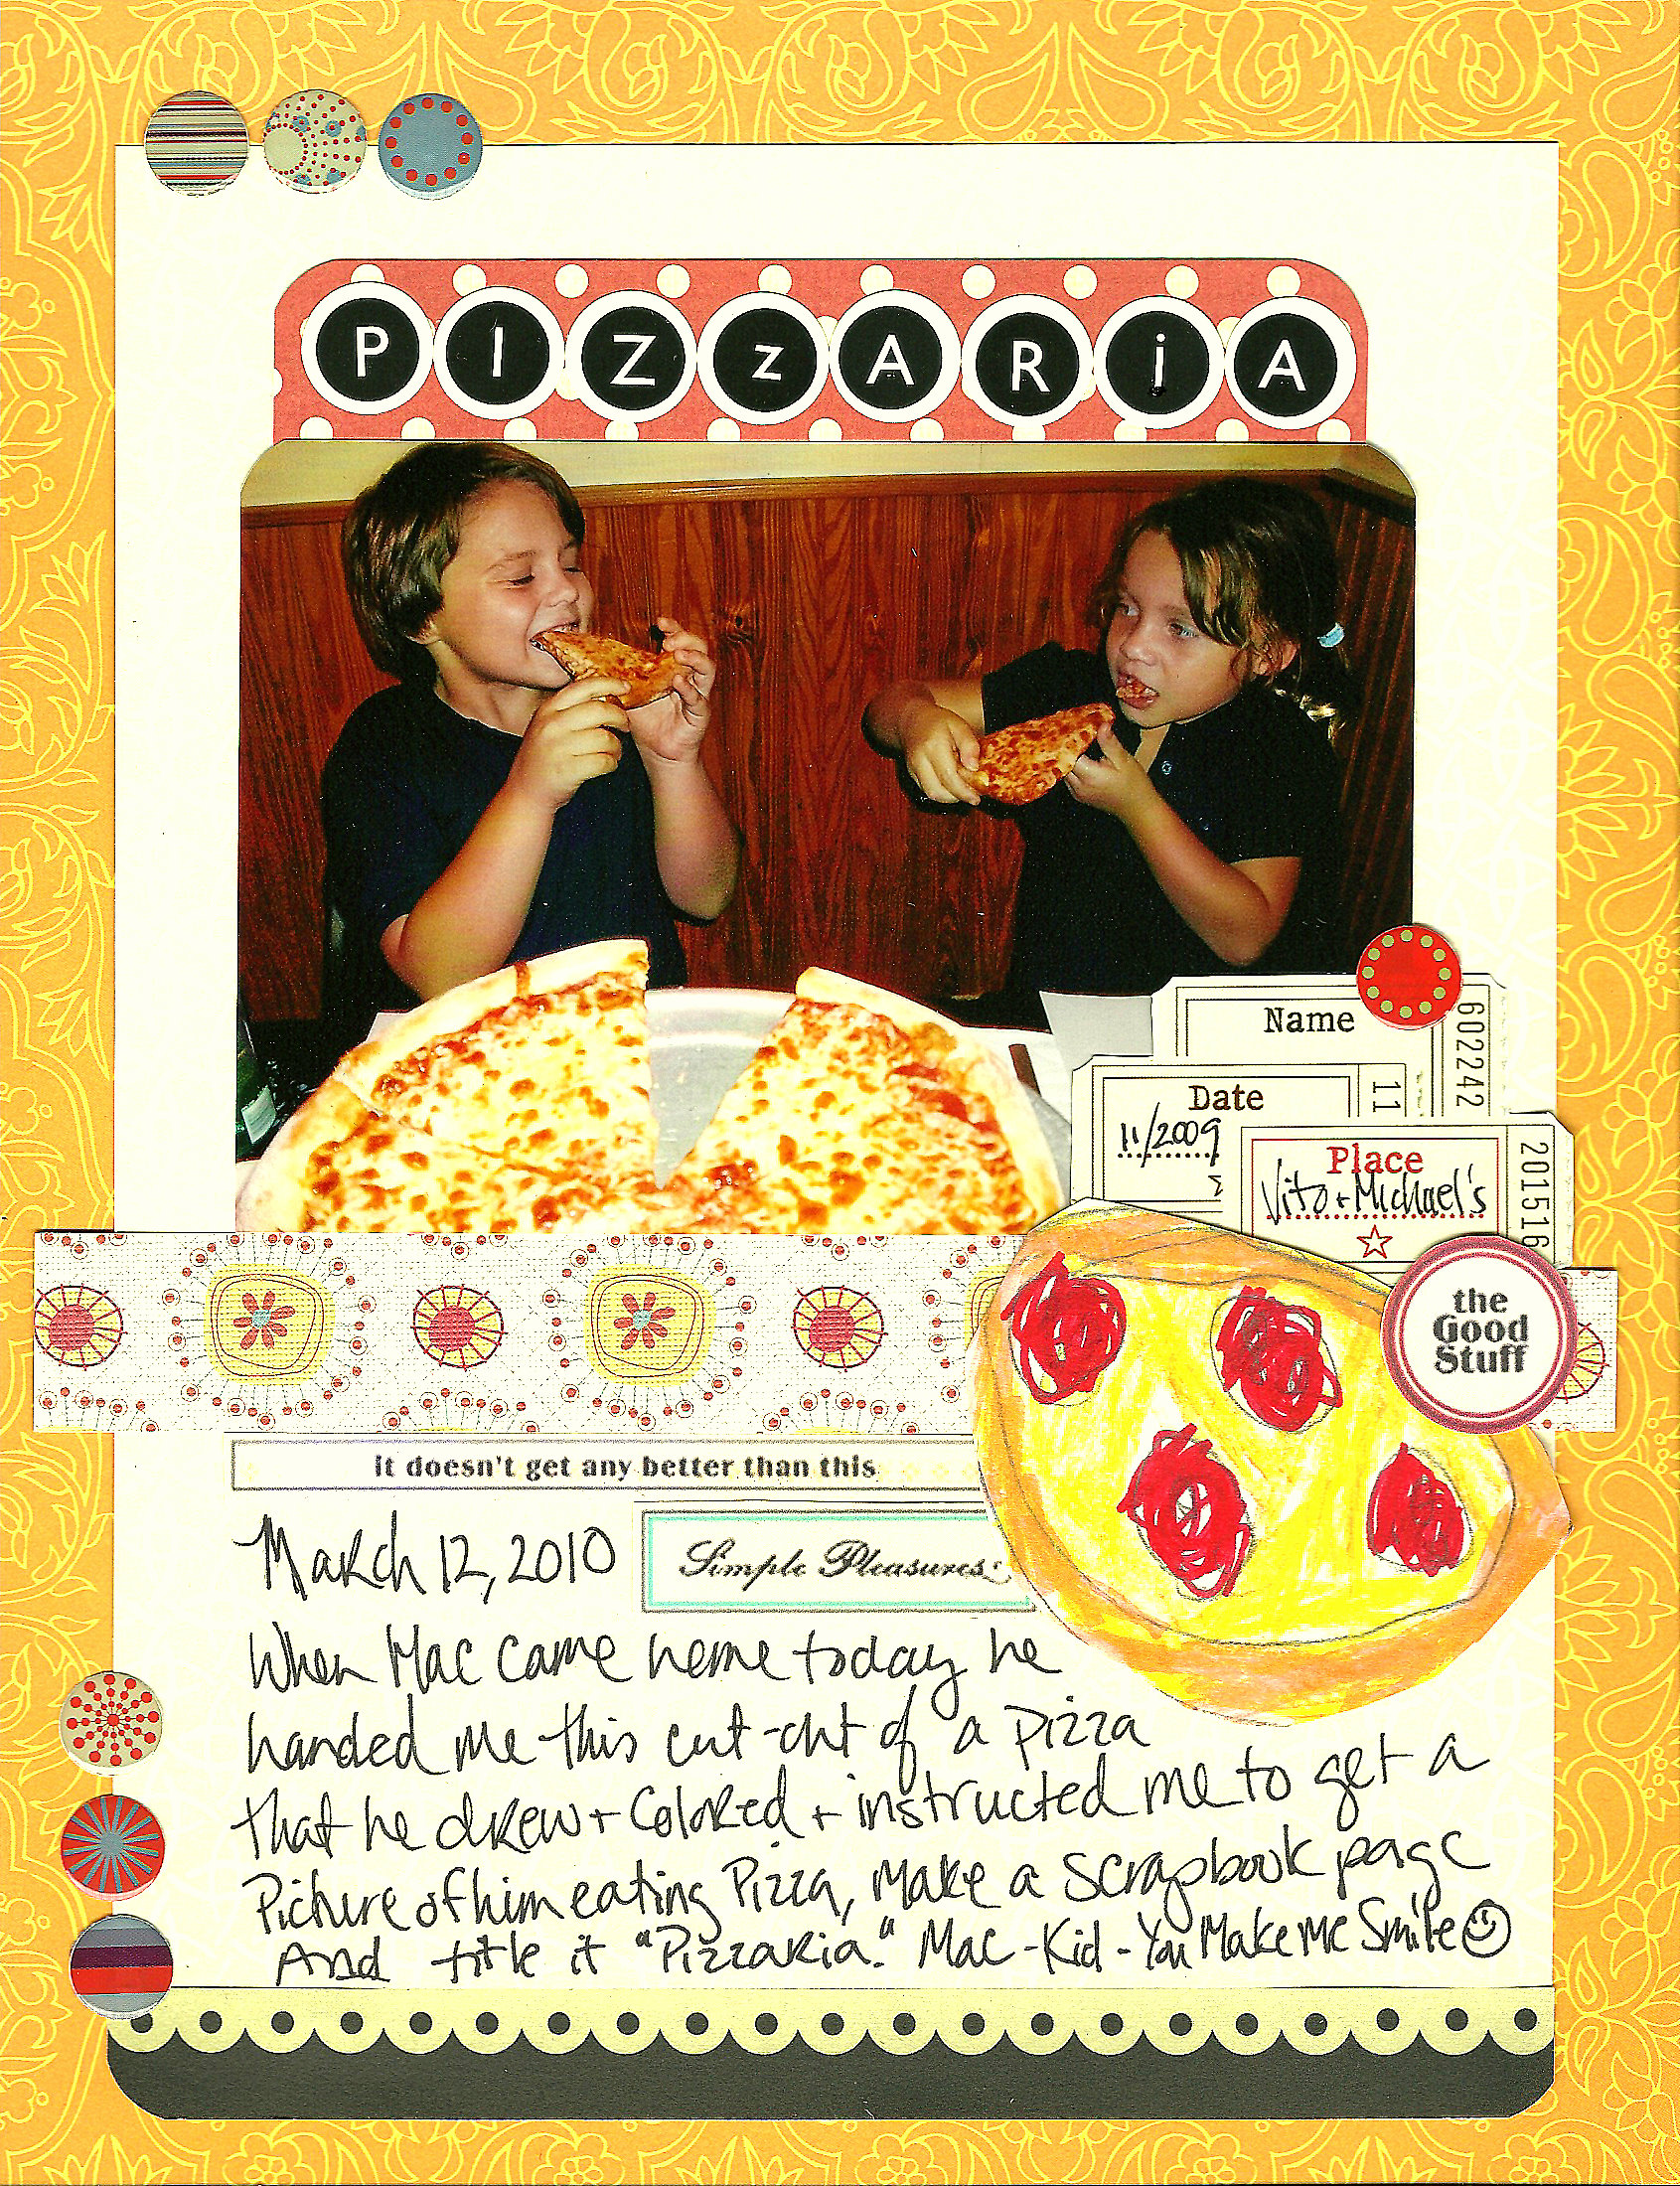 How to scrapbook on mac - The Journaling Reads March 12 2010 When Mac Came Home Today He Handed Me This Cut Out Of A Pizza That He Drew And Colored And Instructed Me To Get A